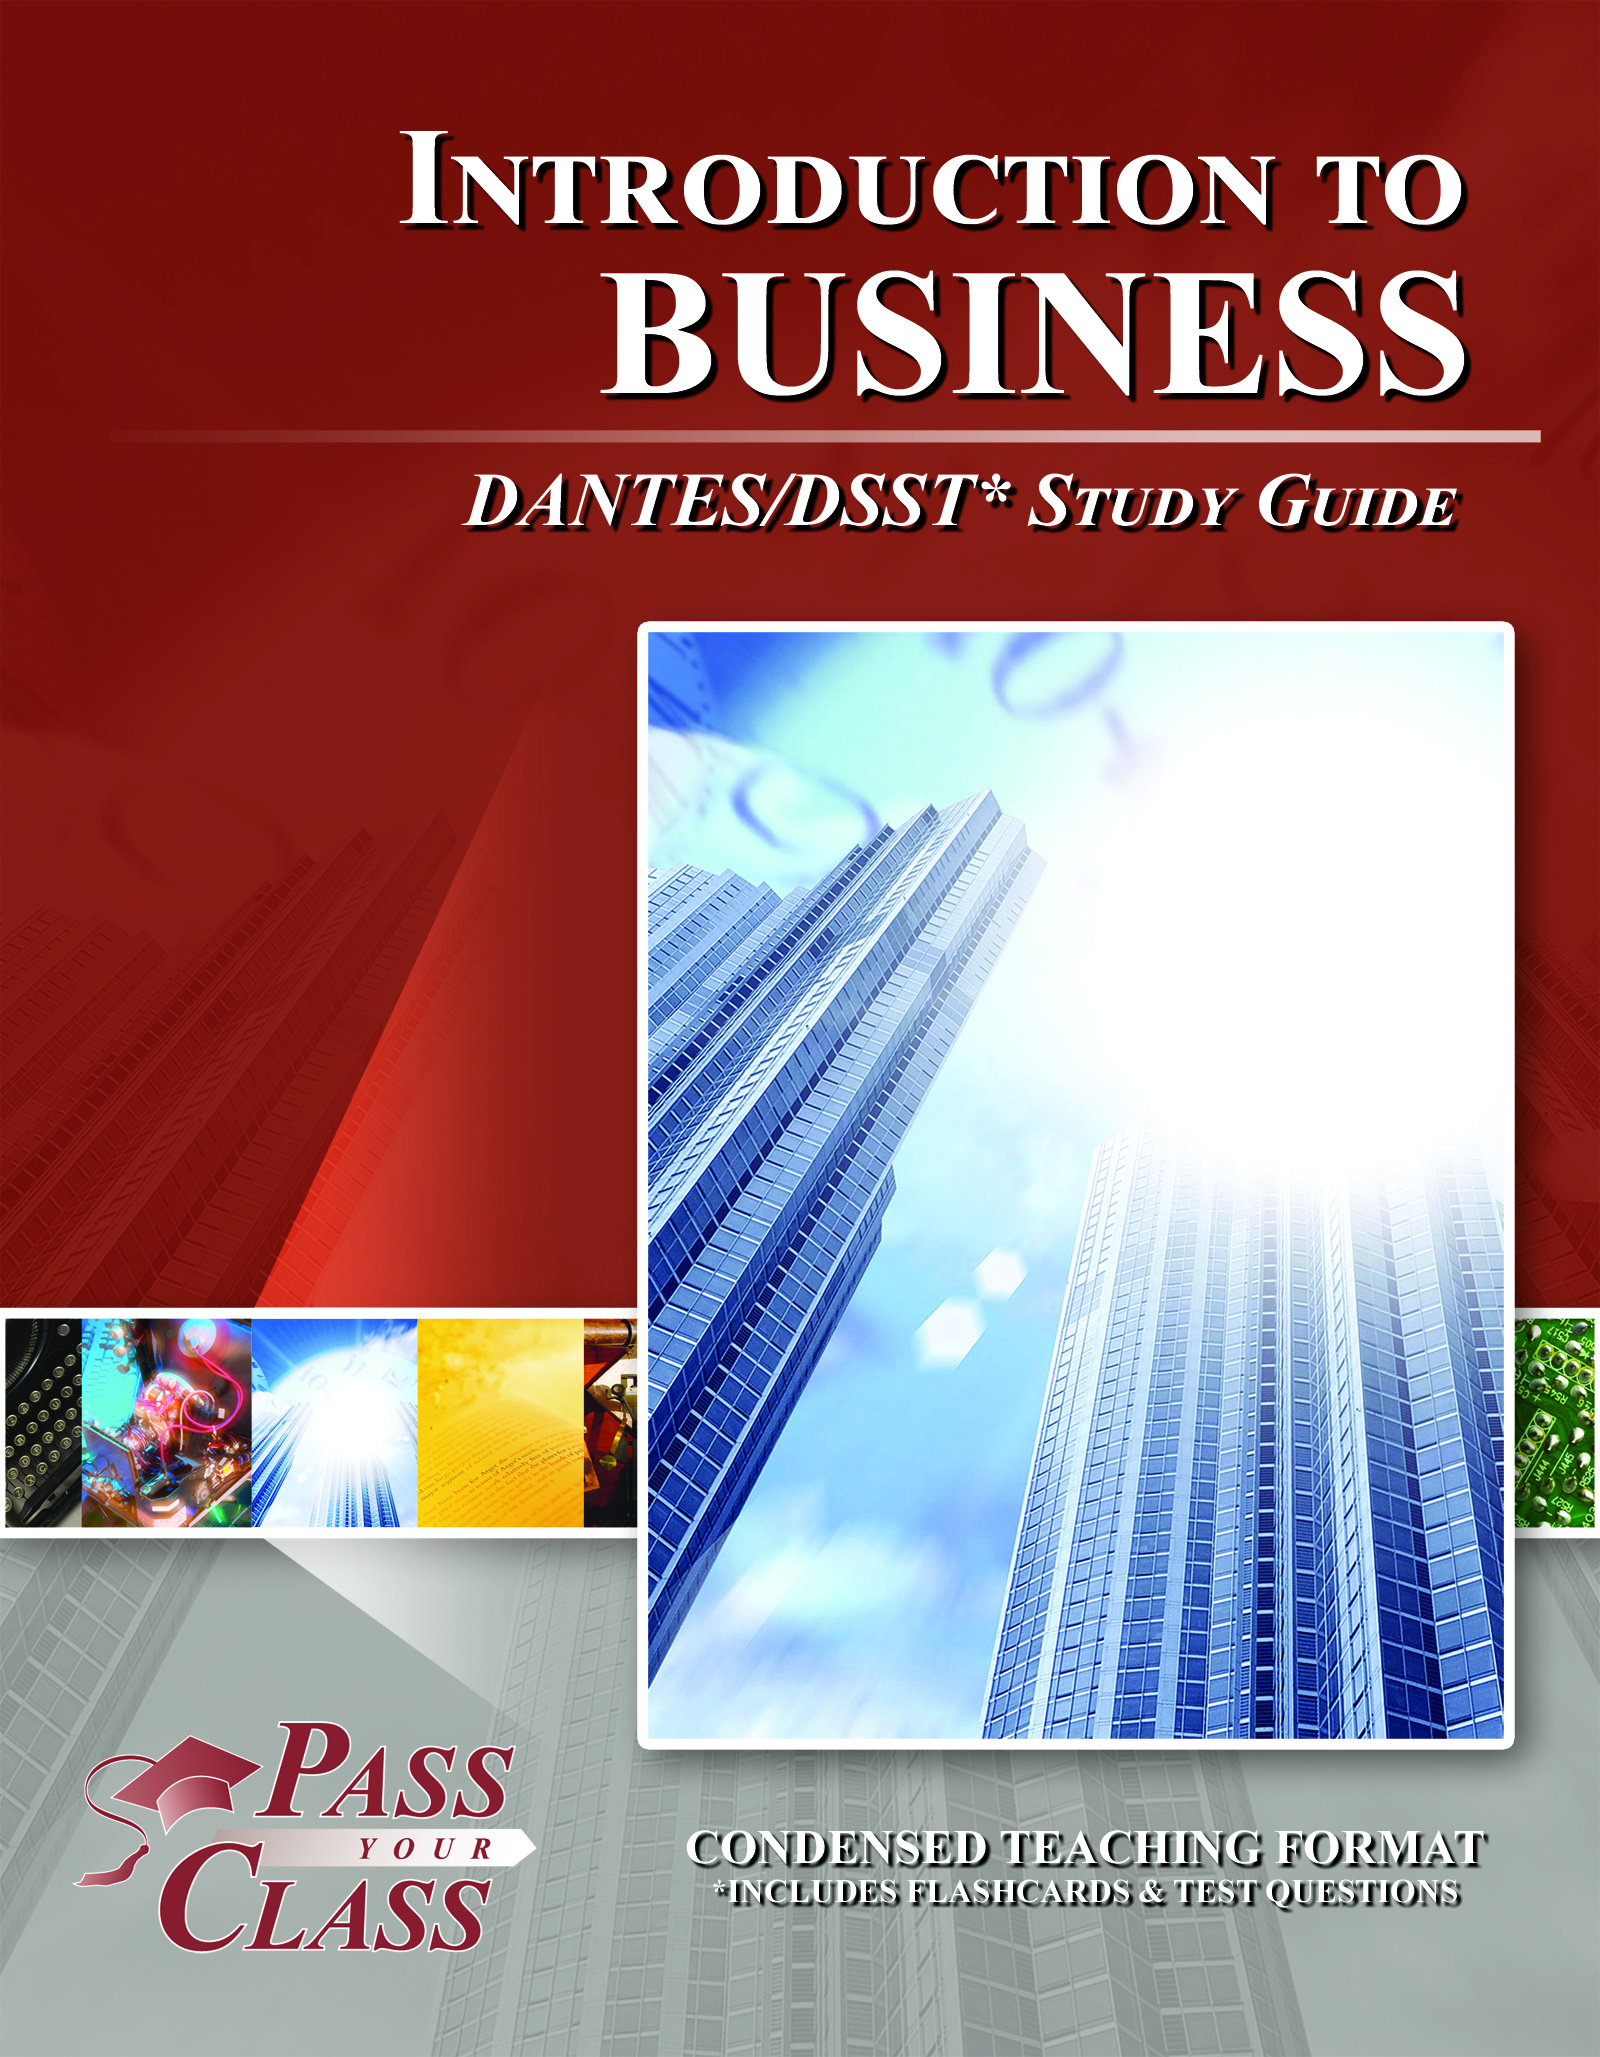 introduction to business study The introduction to business dantes/dsst study guide teaches you everything that you need to know to pass the dsst test this study guide is more than just pages of sample test questions our easy to understand study guide will teach you the information.